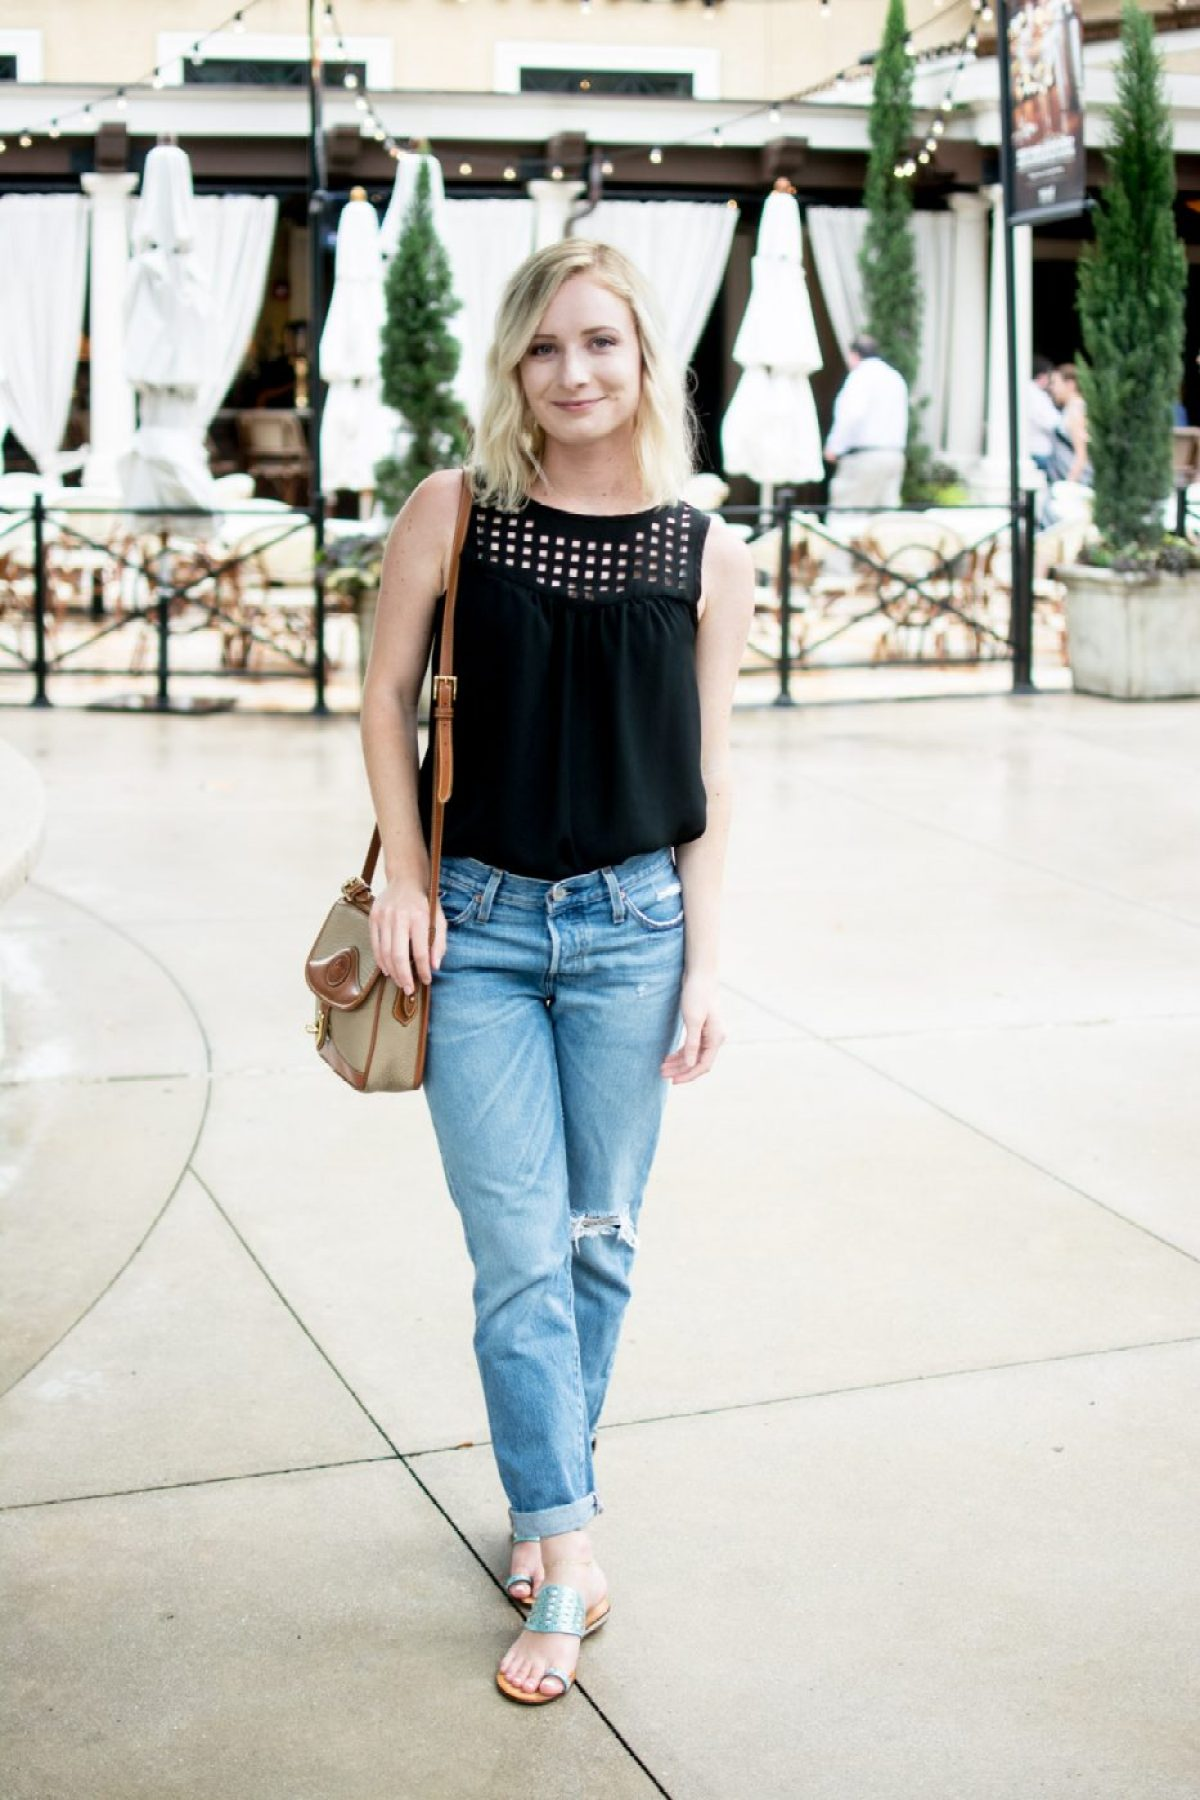 Jenny of Sweet Teal wearing Levi's to dinner at BRAVO